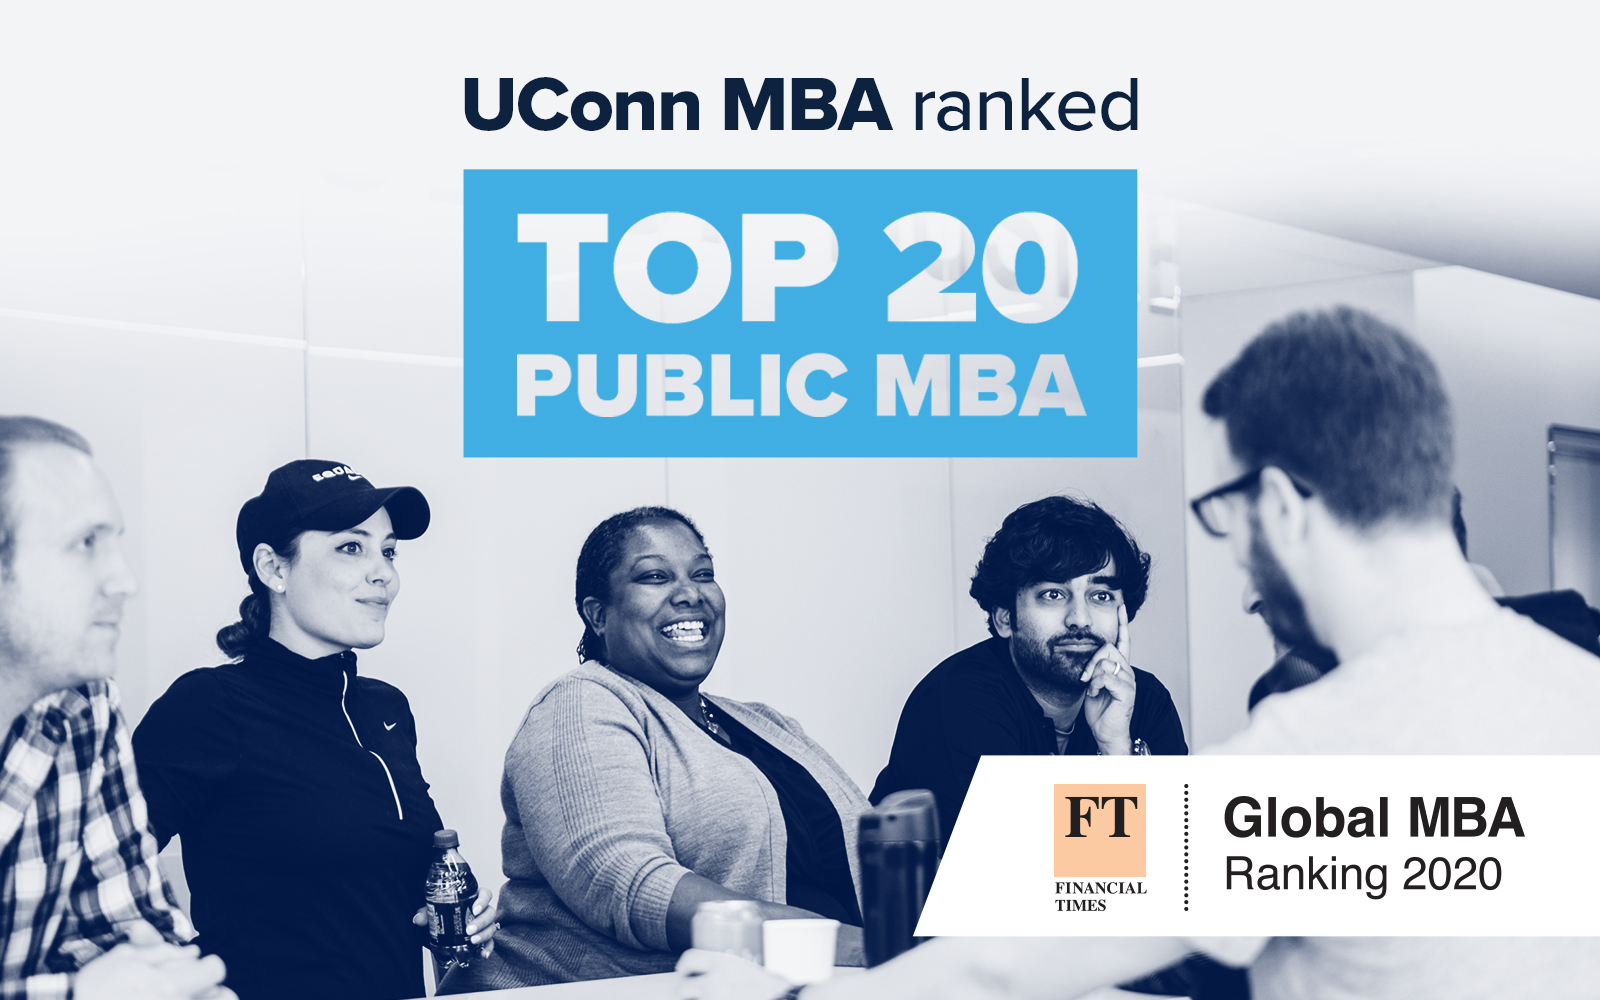 Text: UConn MBA Ranked TOP 20 Public MBA - Group of MBA Students, studying.